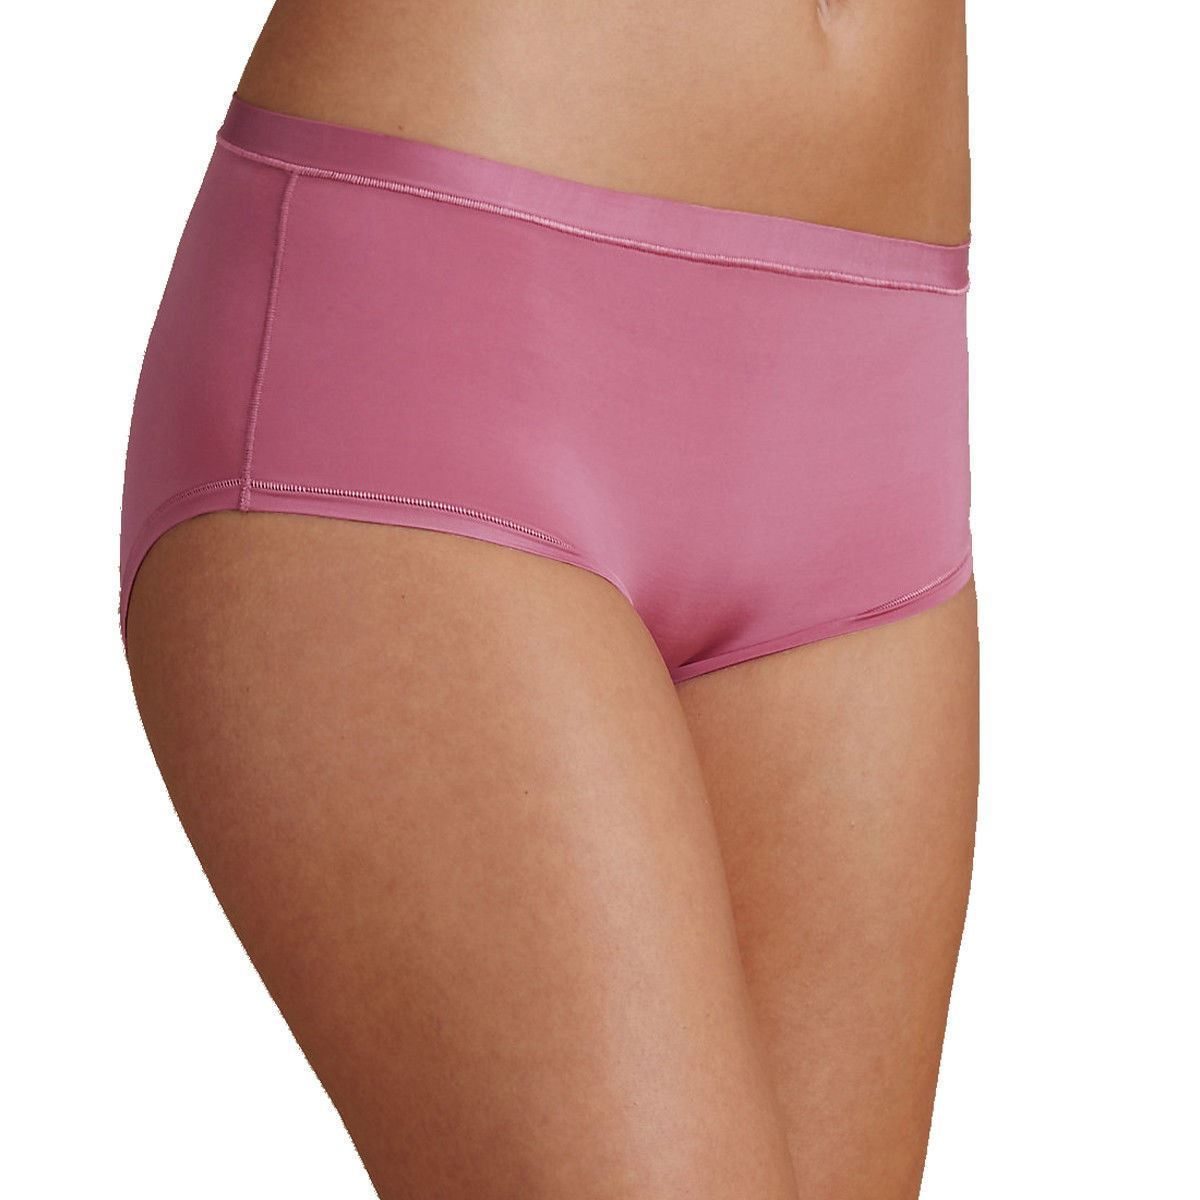 Details about  /NEW EX M /& S LADIES PINK FLEXIFIT 4 WAY STRETCH COMFORTABLE PANTS KNICKERS 8-22